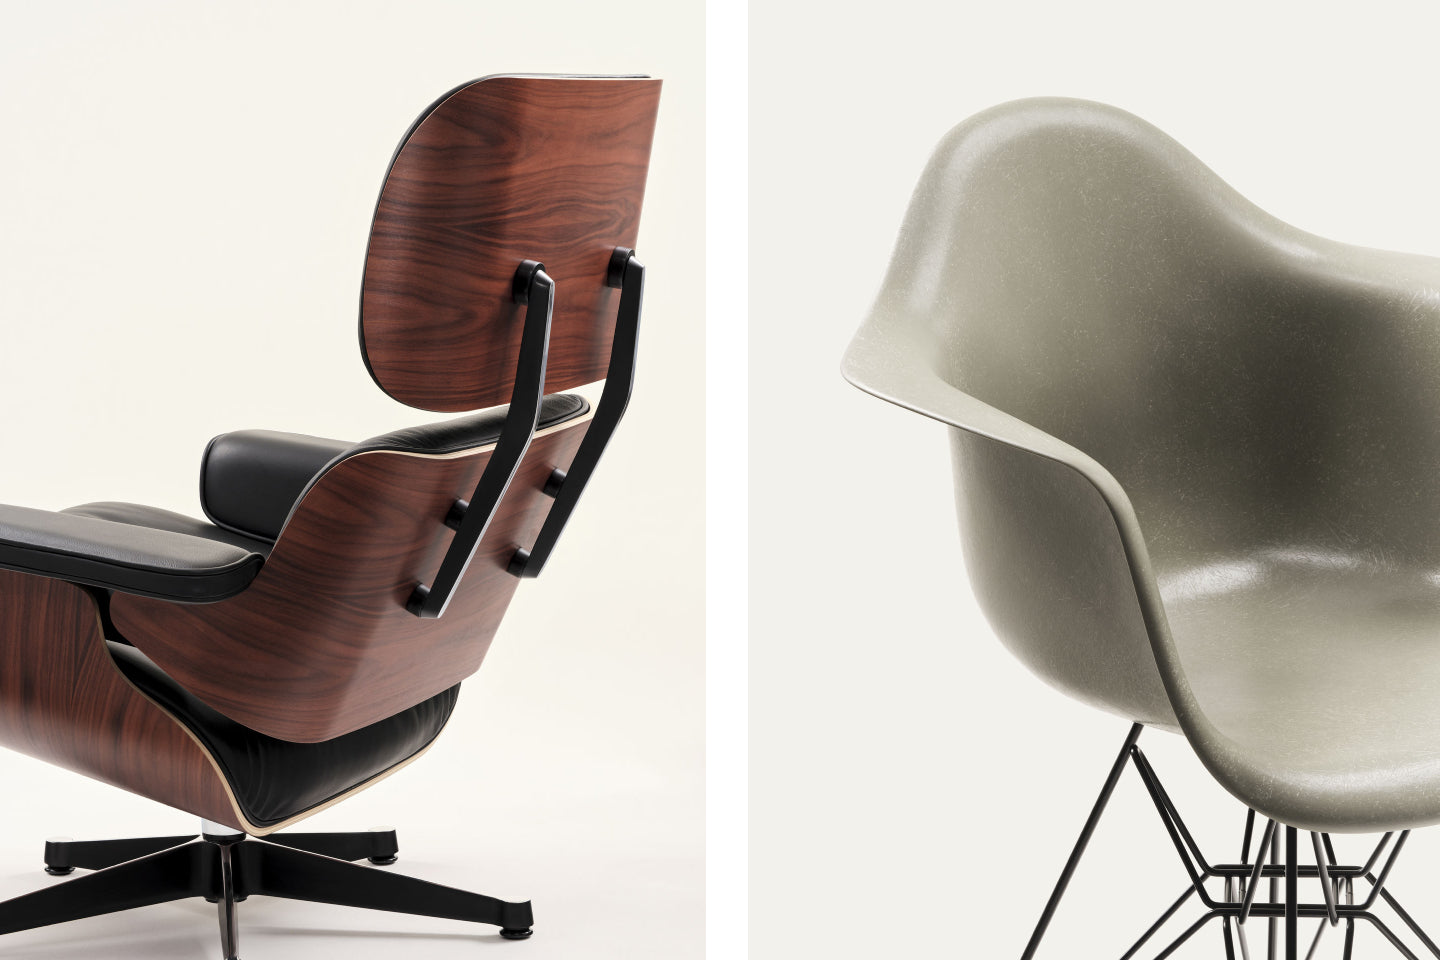 eames lounge chair DSW chair vitra